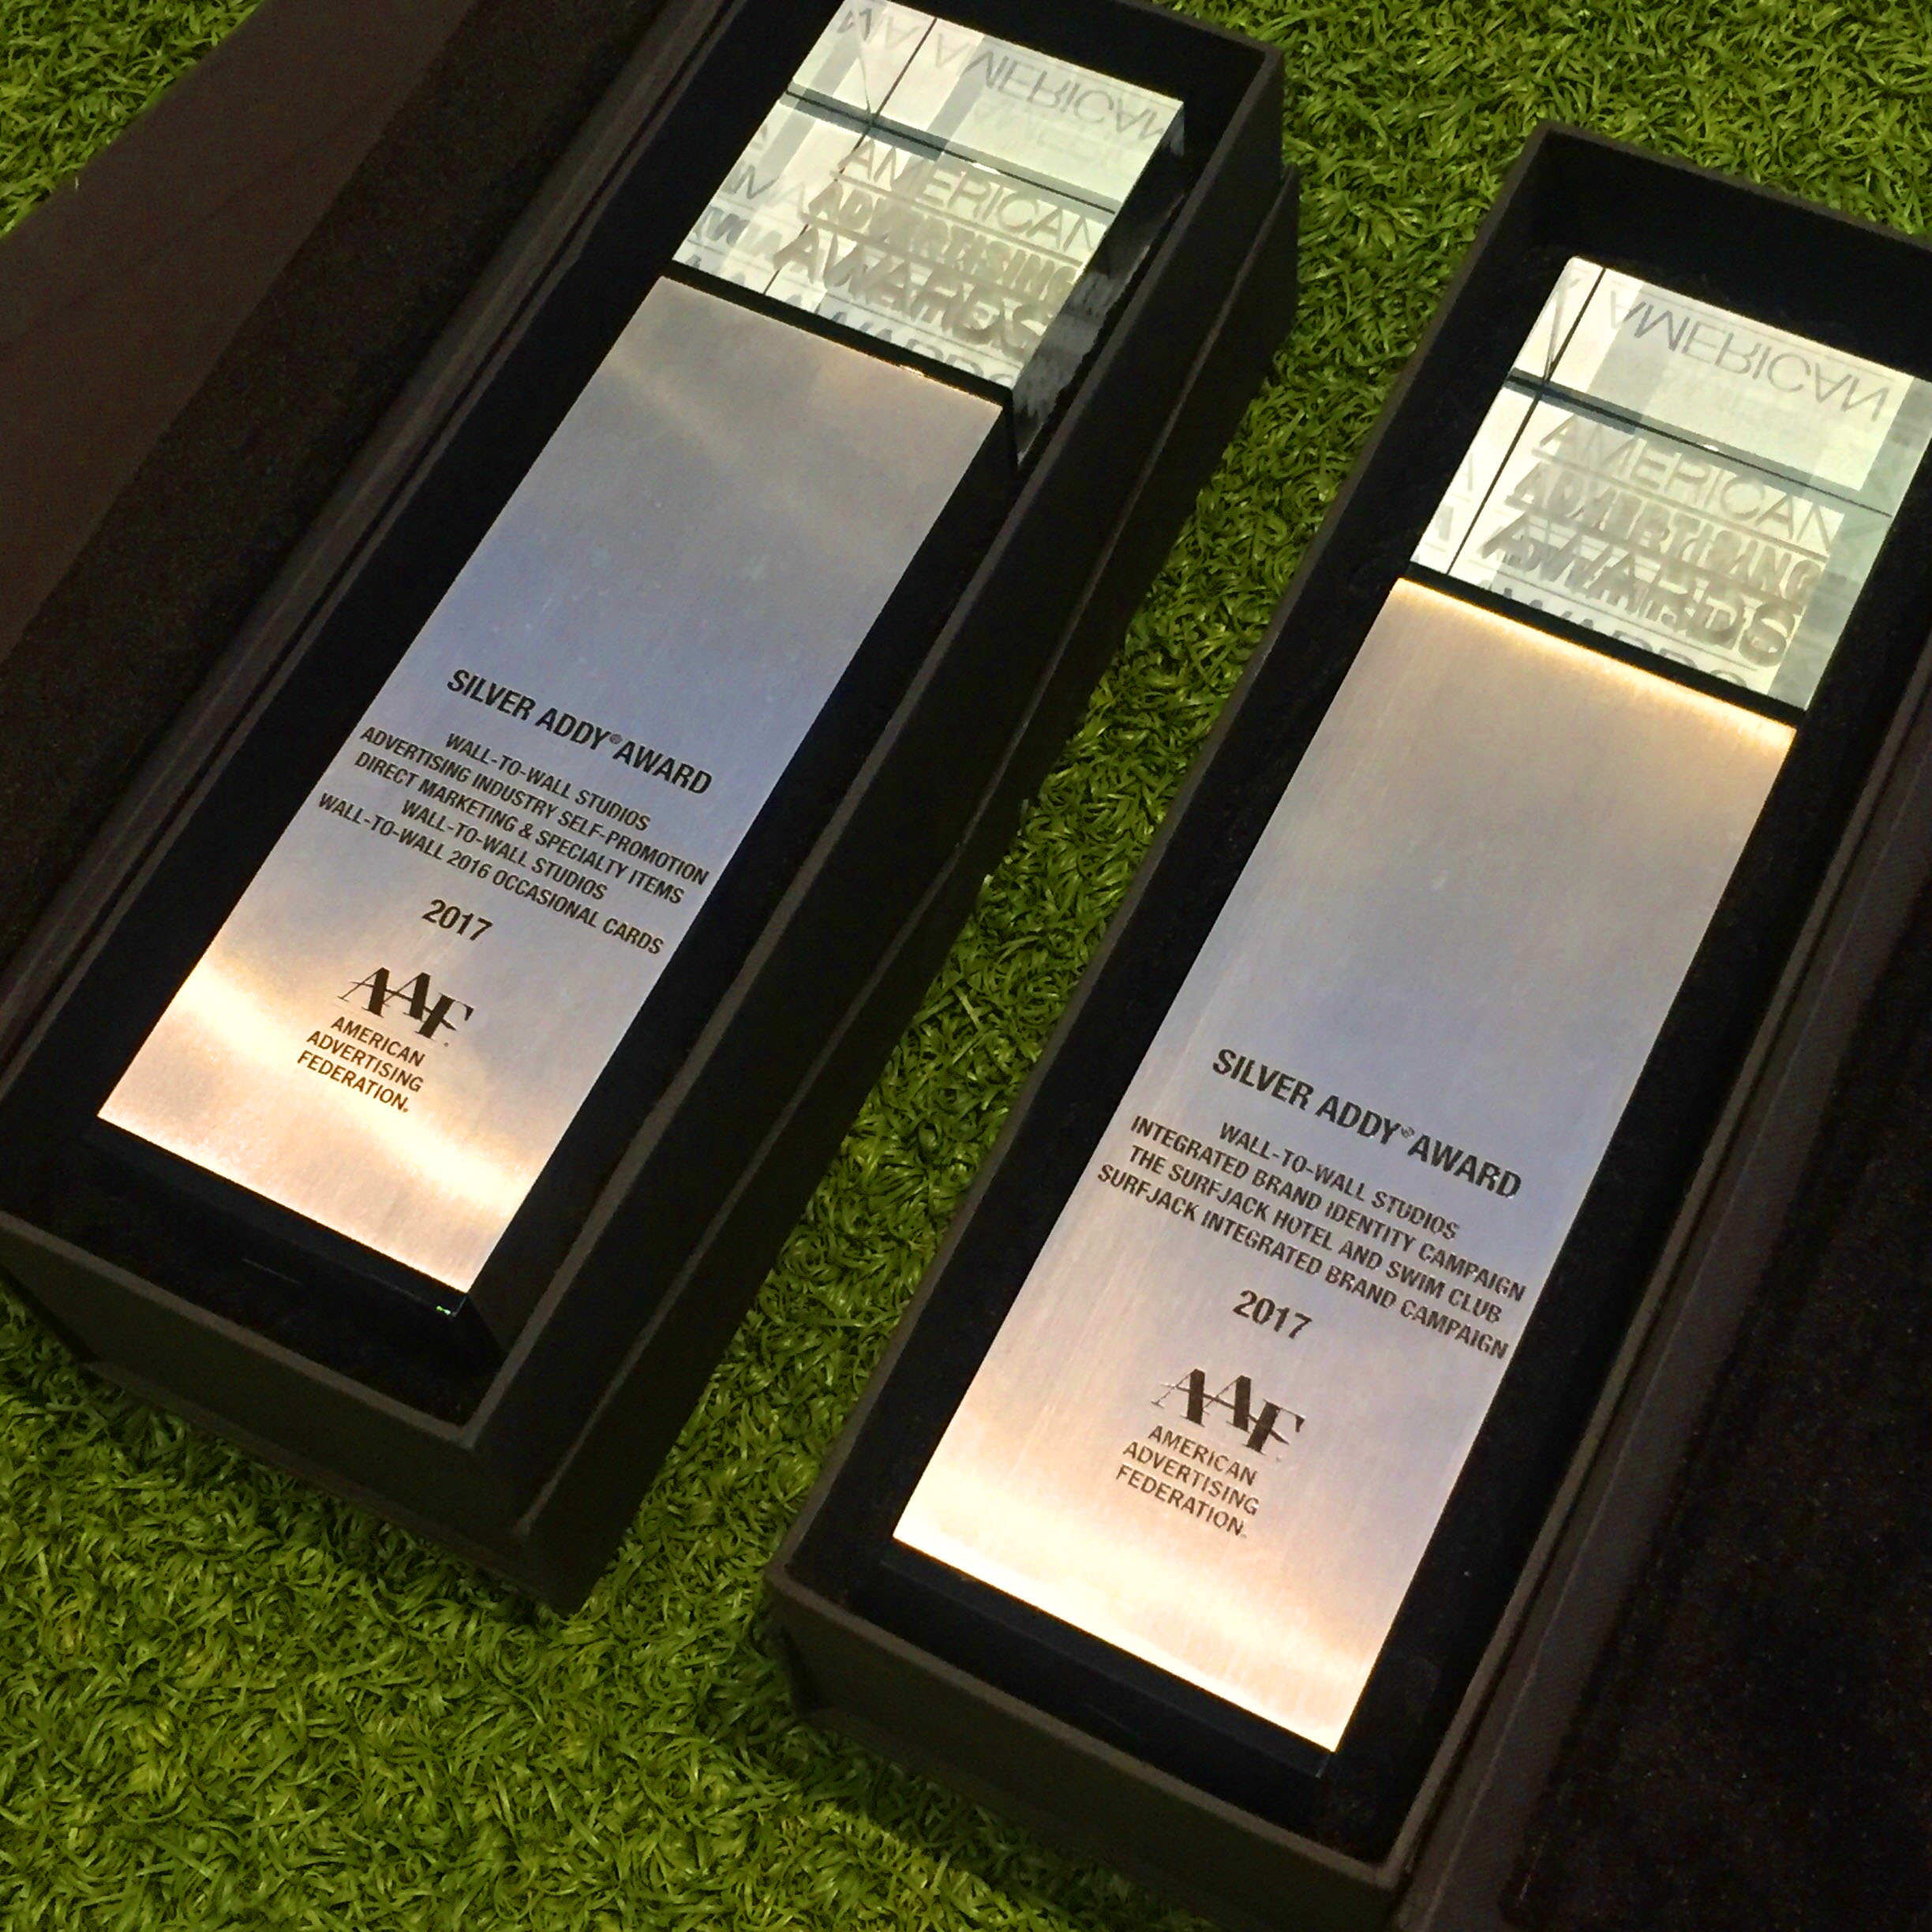 Wall to Wall Studios Wins Two National Silver Addy Awards For